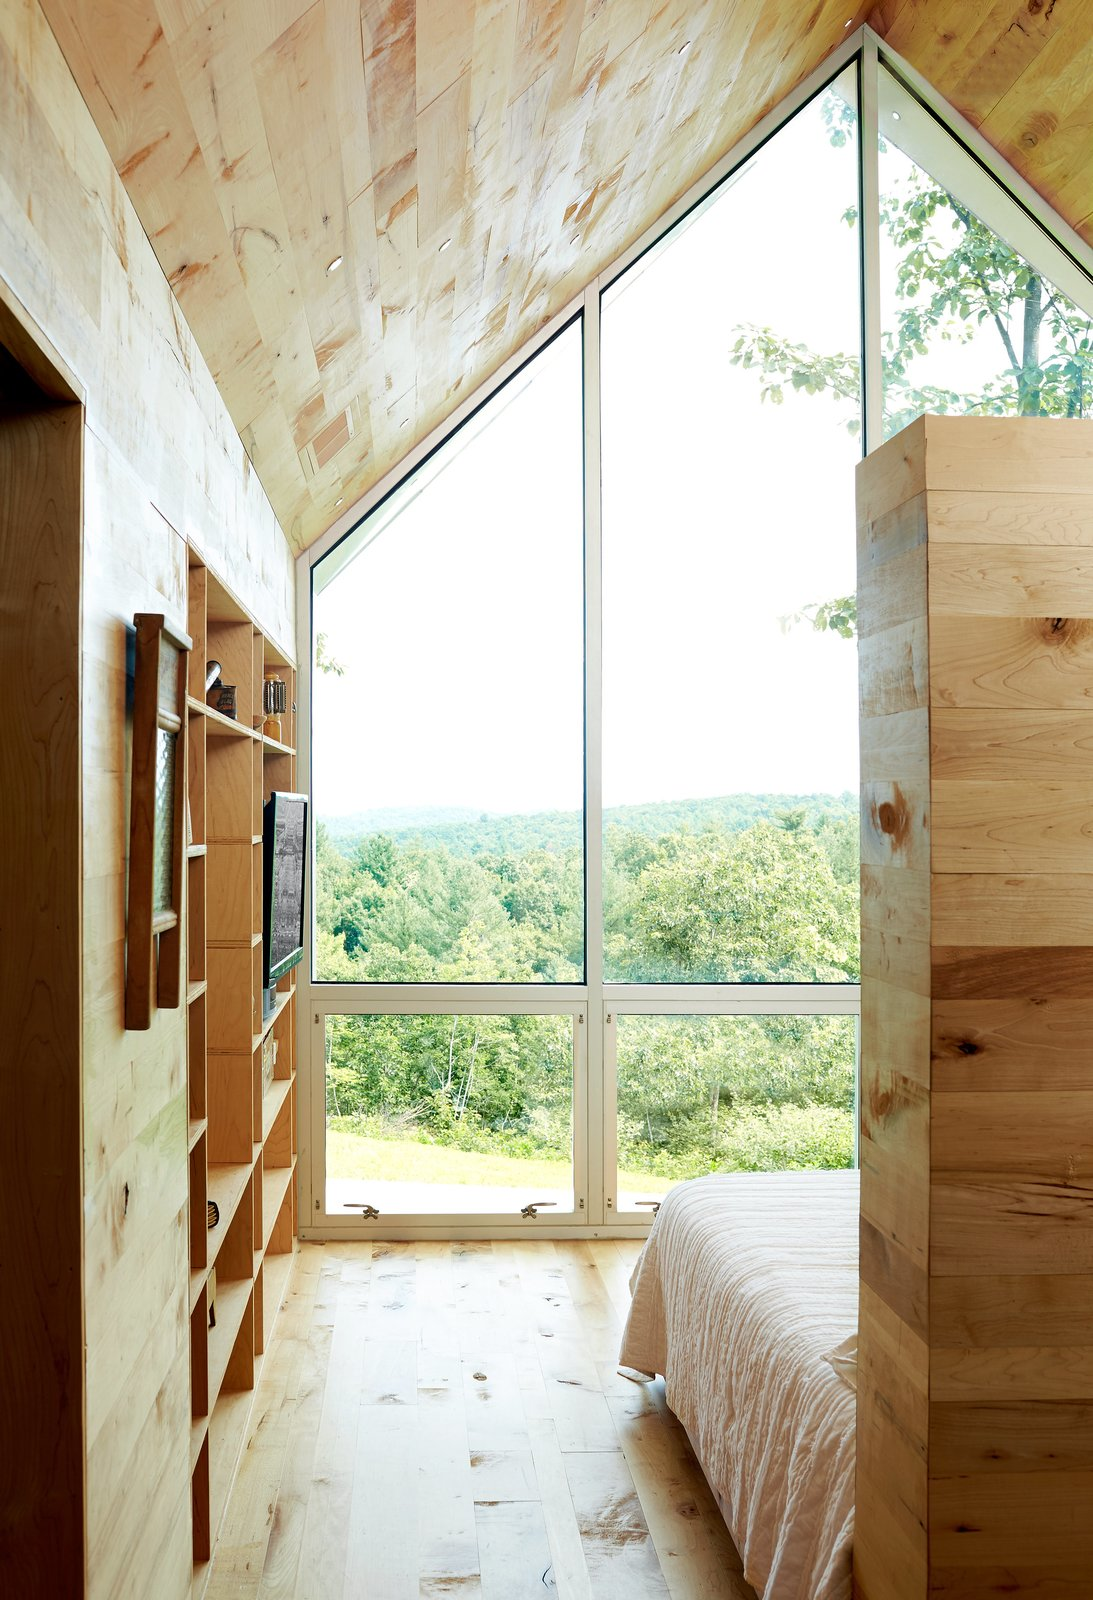 Bedroom, Bed, Storage, Bookcase, and Medium Hardwood Floor An 800-square-foot addition expands the Virginia home of Lauren and Josh Stegall. Built for $120,000, the structure has a large window overlooking the Blue Ridge Parkway and Sugarloaf Mountain.  Photo 2 of 8 in Happy Trails